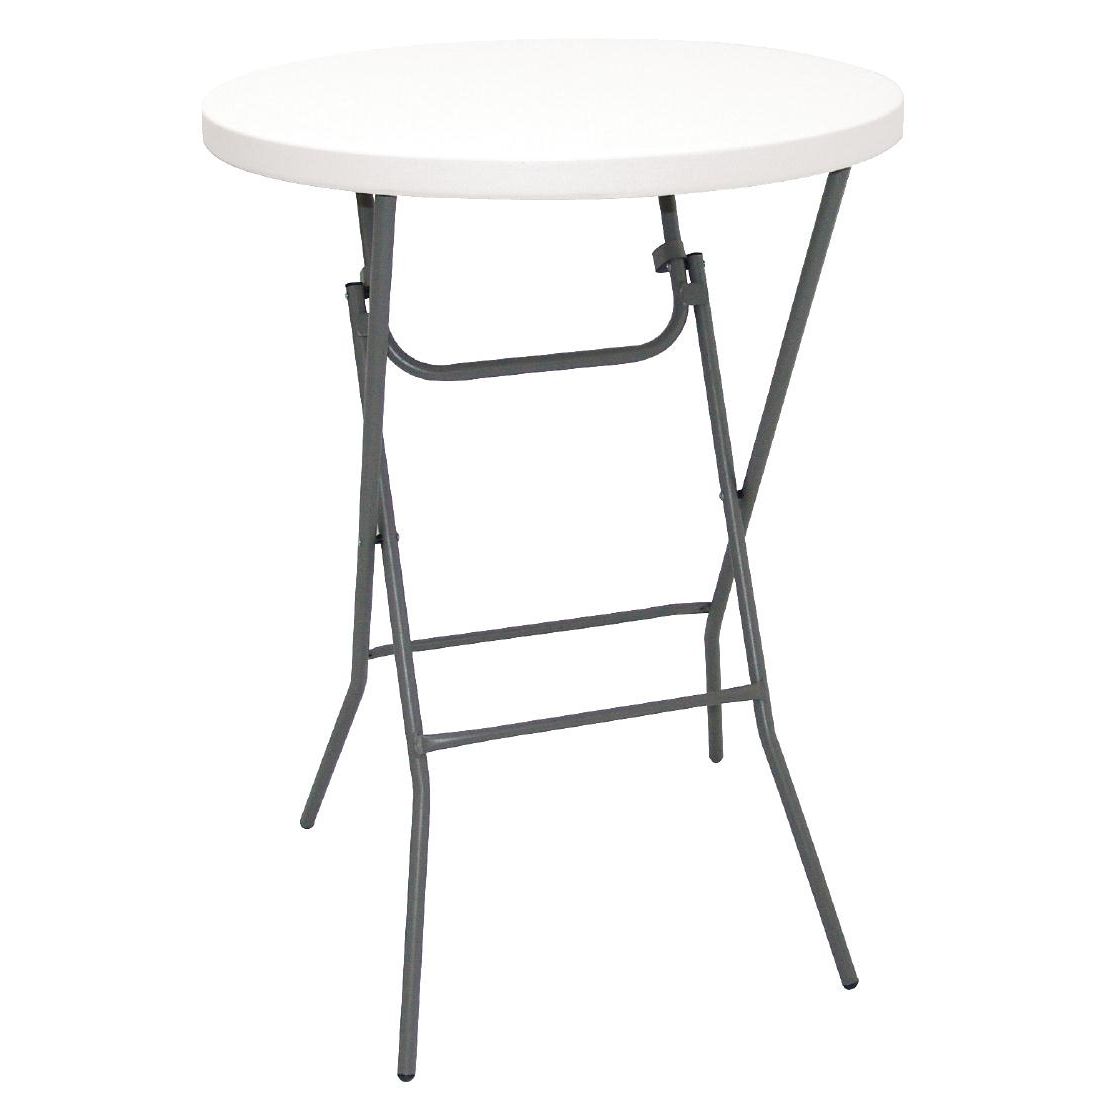 Bolero Foldaway Poseur Table